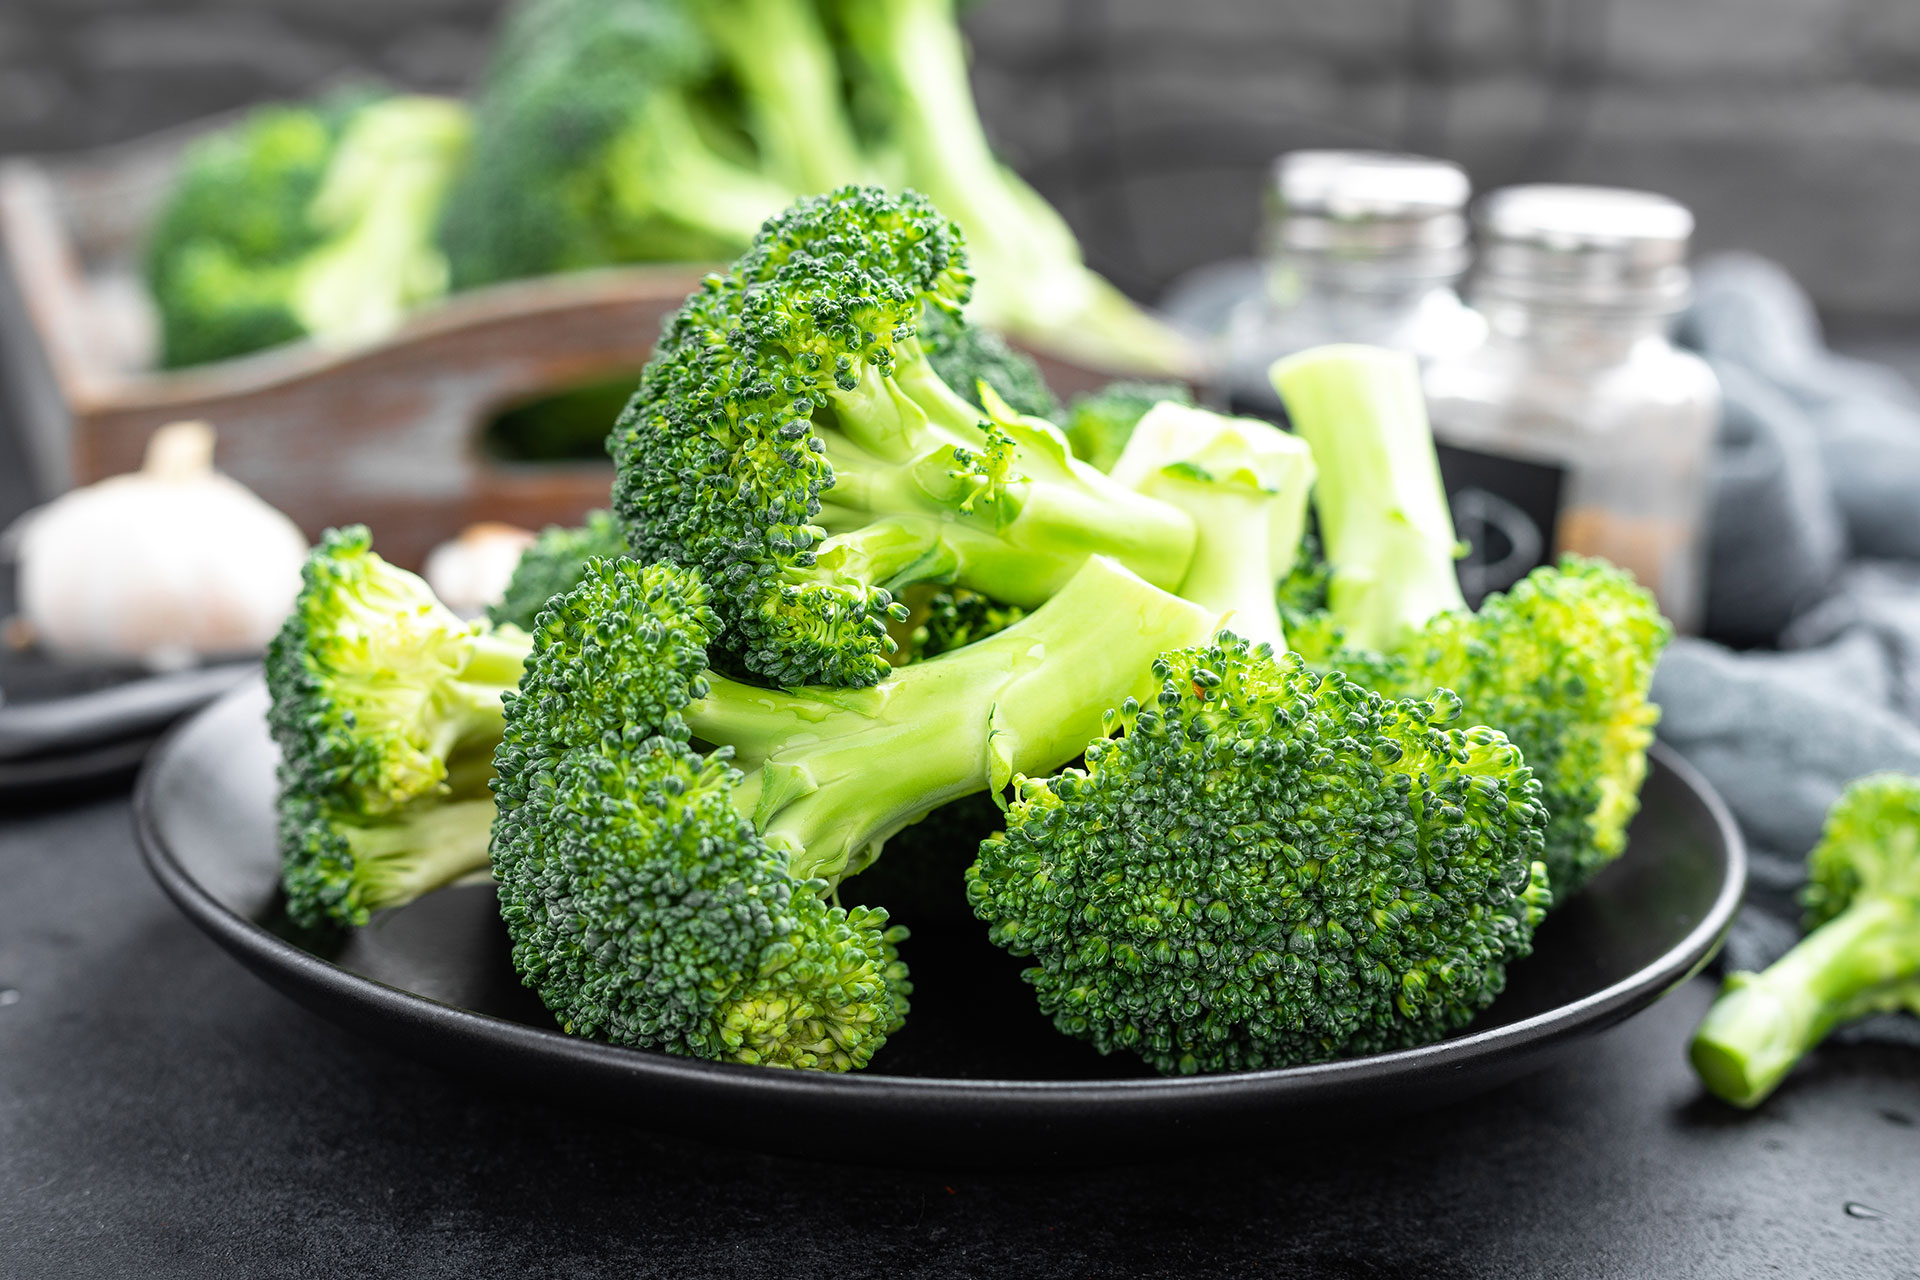 Fight Breast Cancer with Broccoli and Other Cruciferous Vegetables